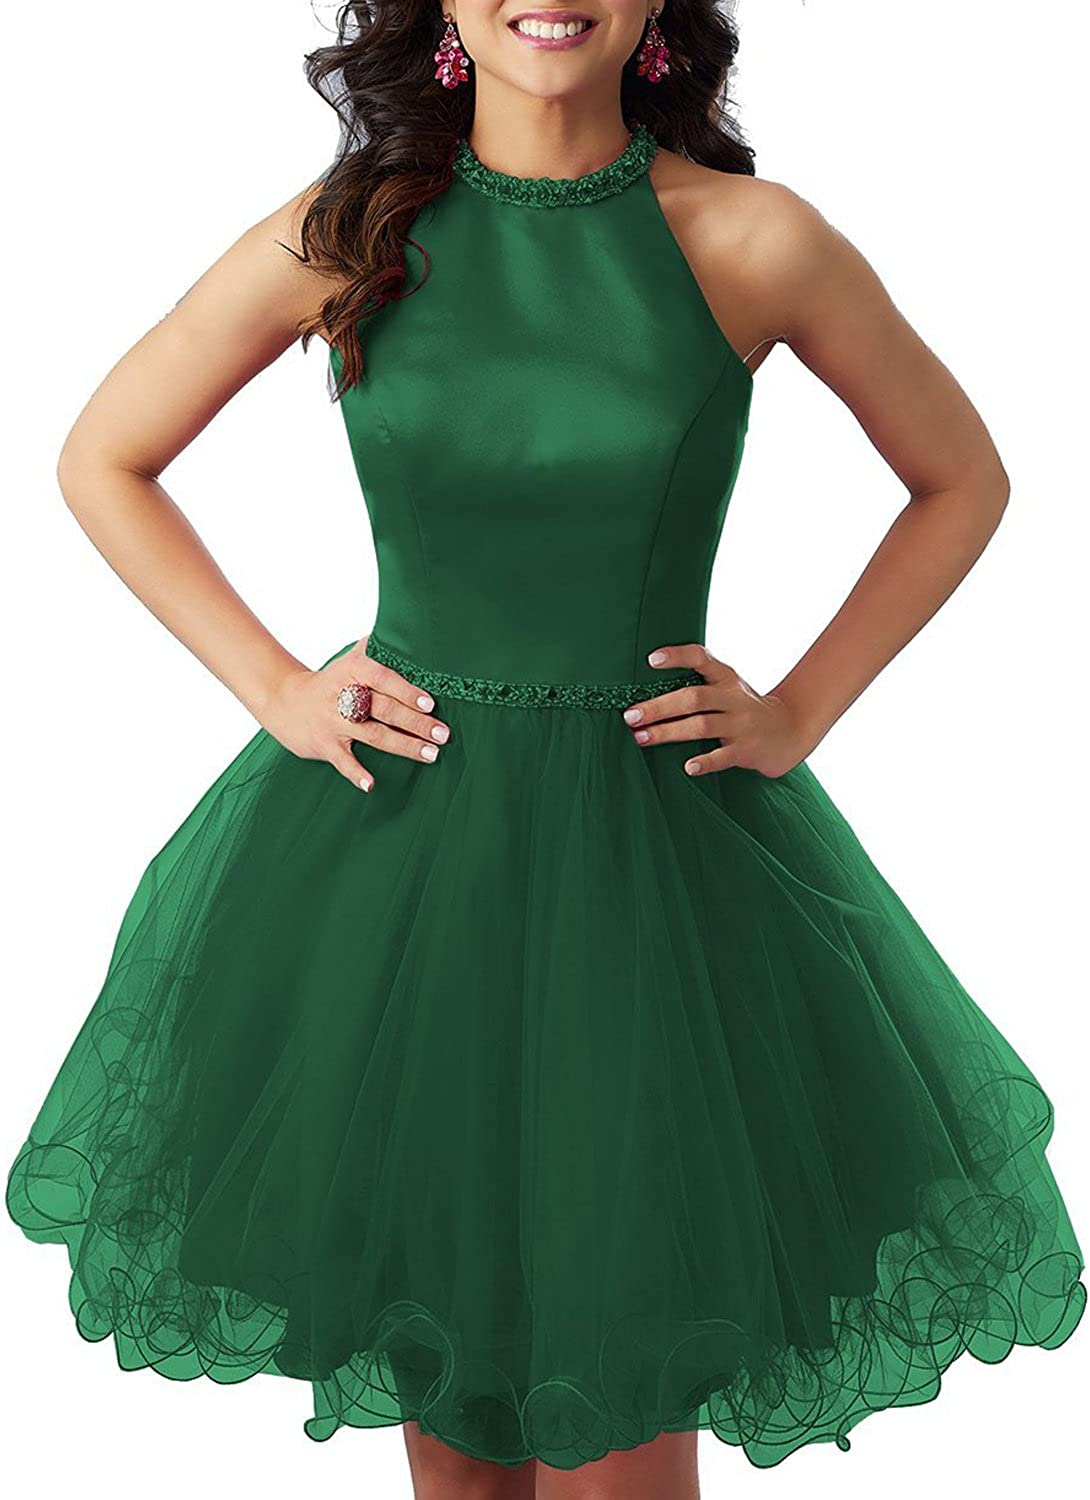 JQLD Women's High Neck Beaded Satin Homecoming Dress Short Evening Party Gown Tulle Skirt